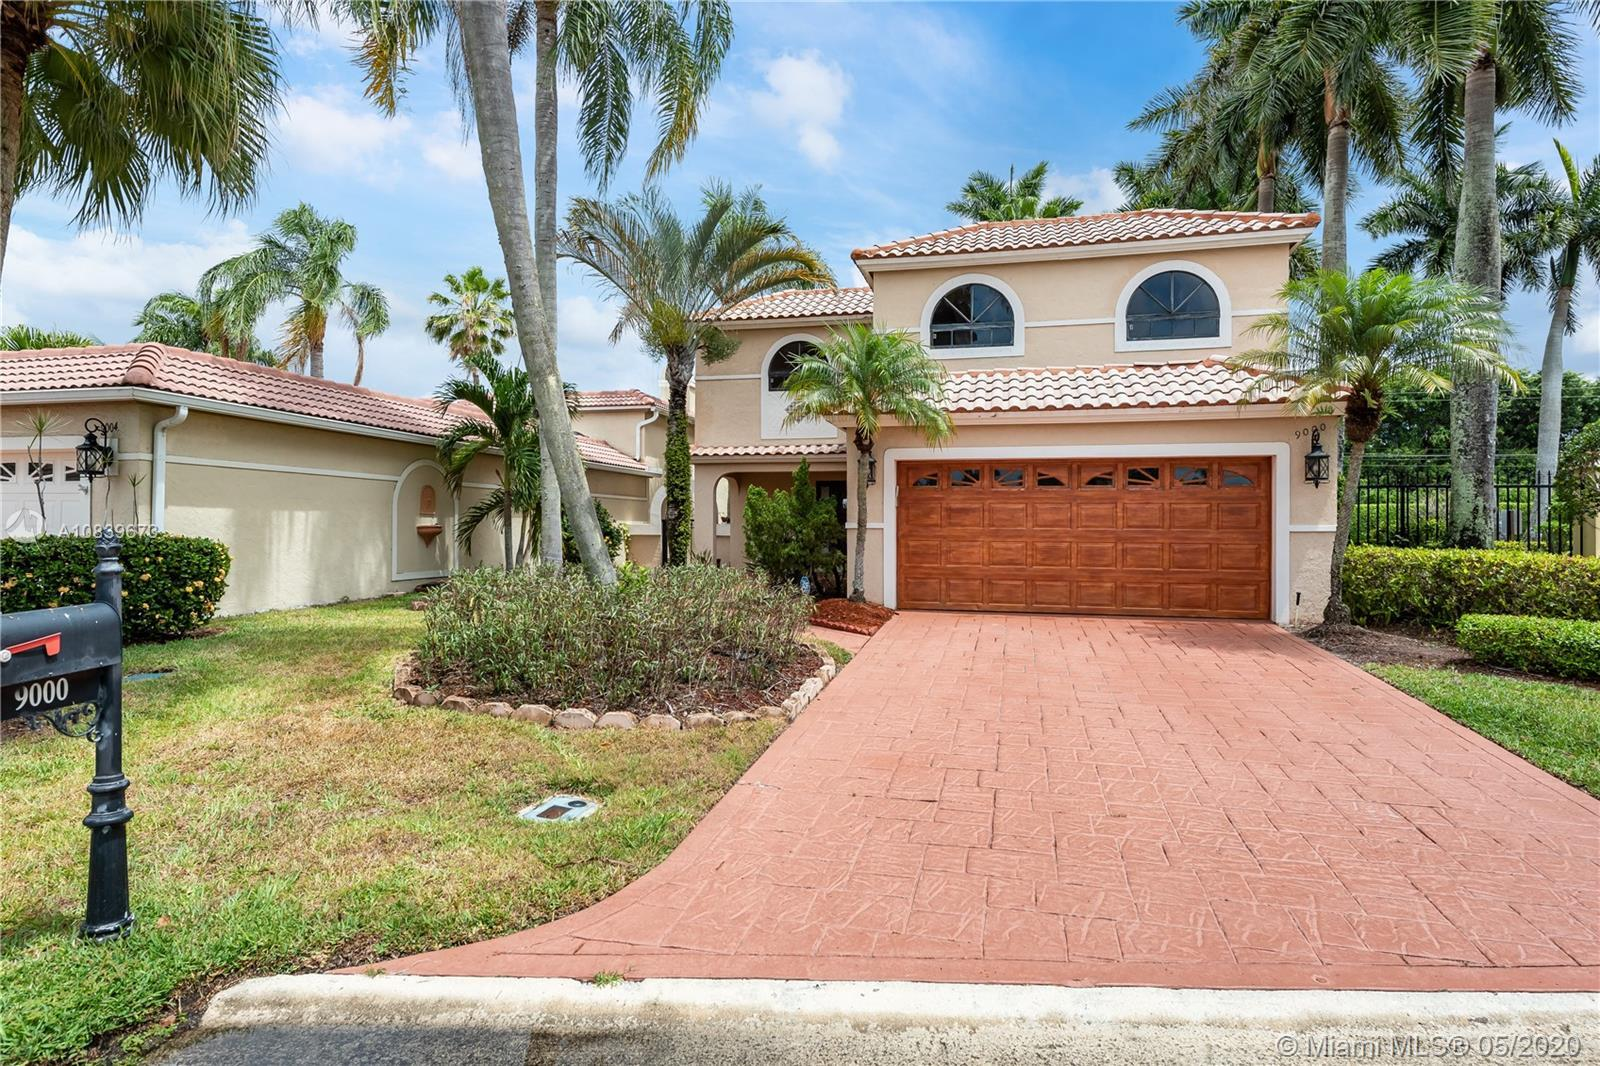 SELLER MOTIVATED. This remarkable 2 story home located in Villa Portofino in Boca Raton is ready for